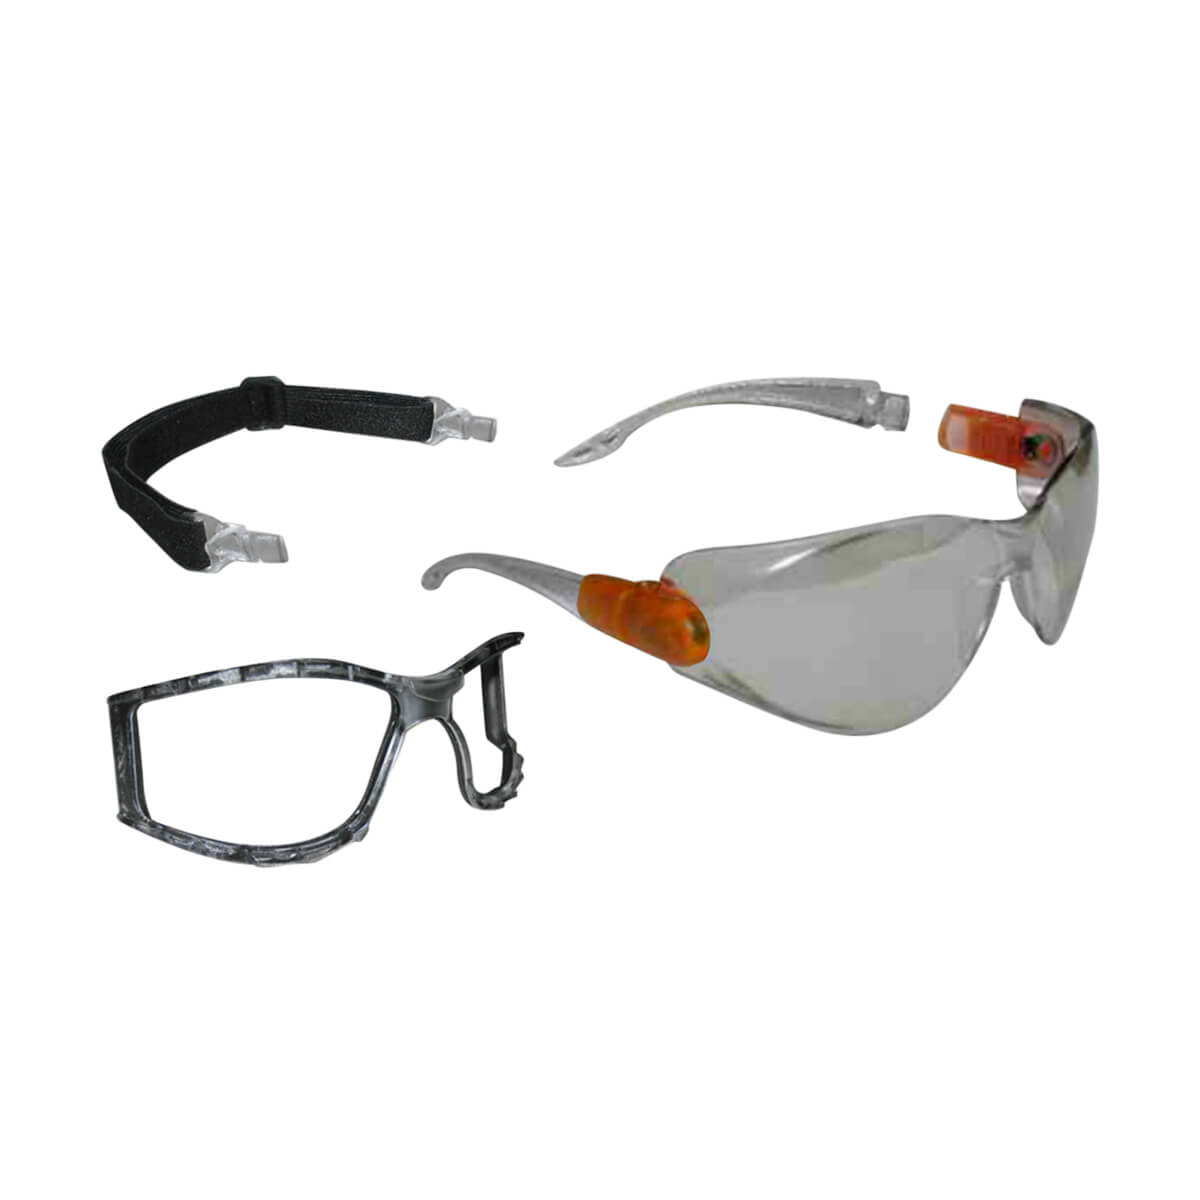 WorkHorse® 2-in-1 Safety Glasses - Clear Lens